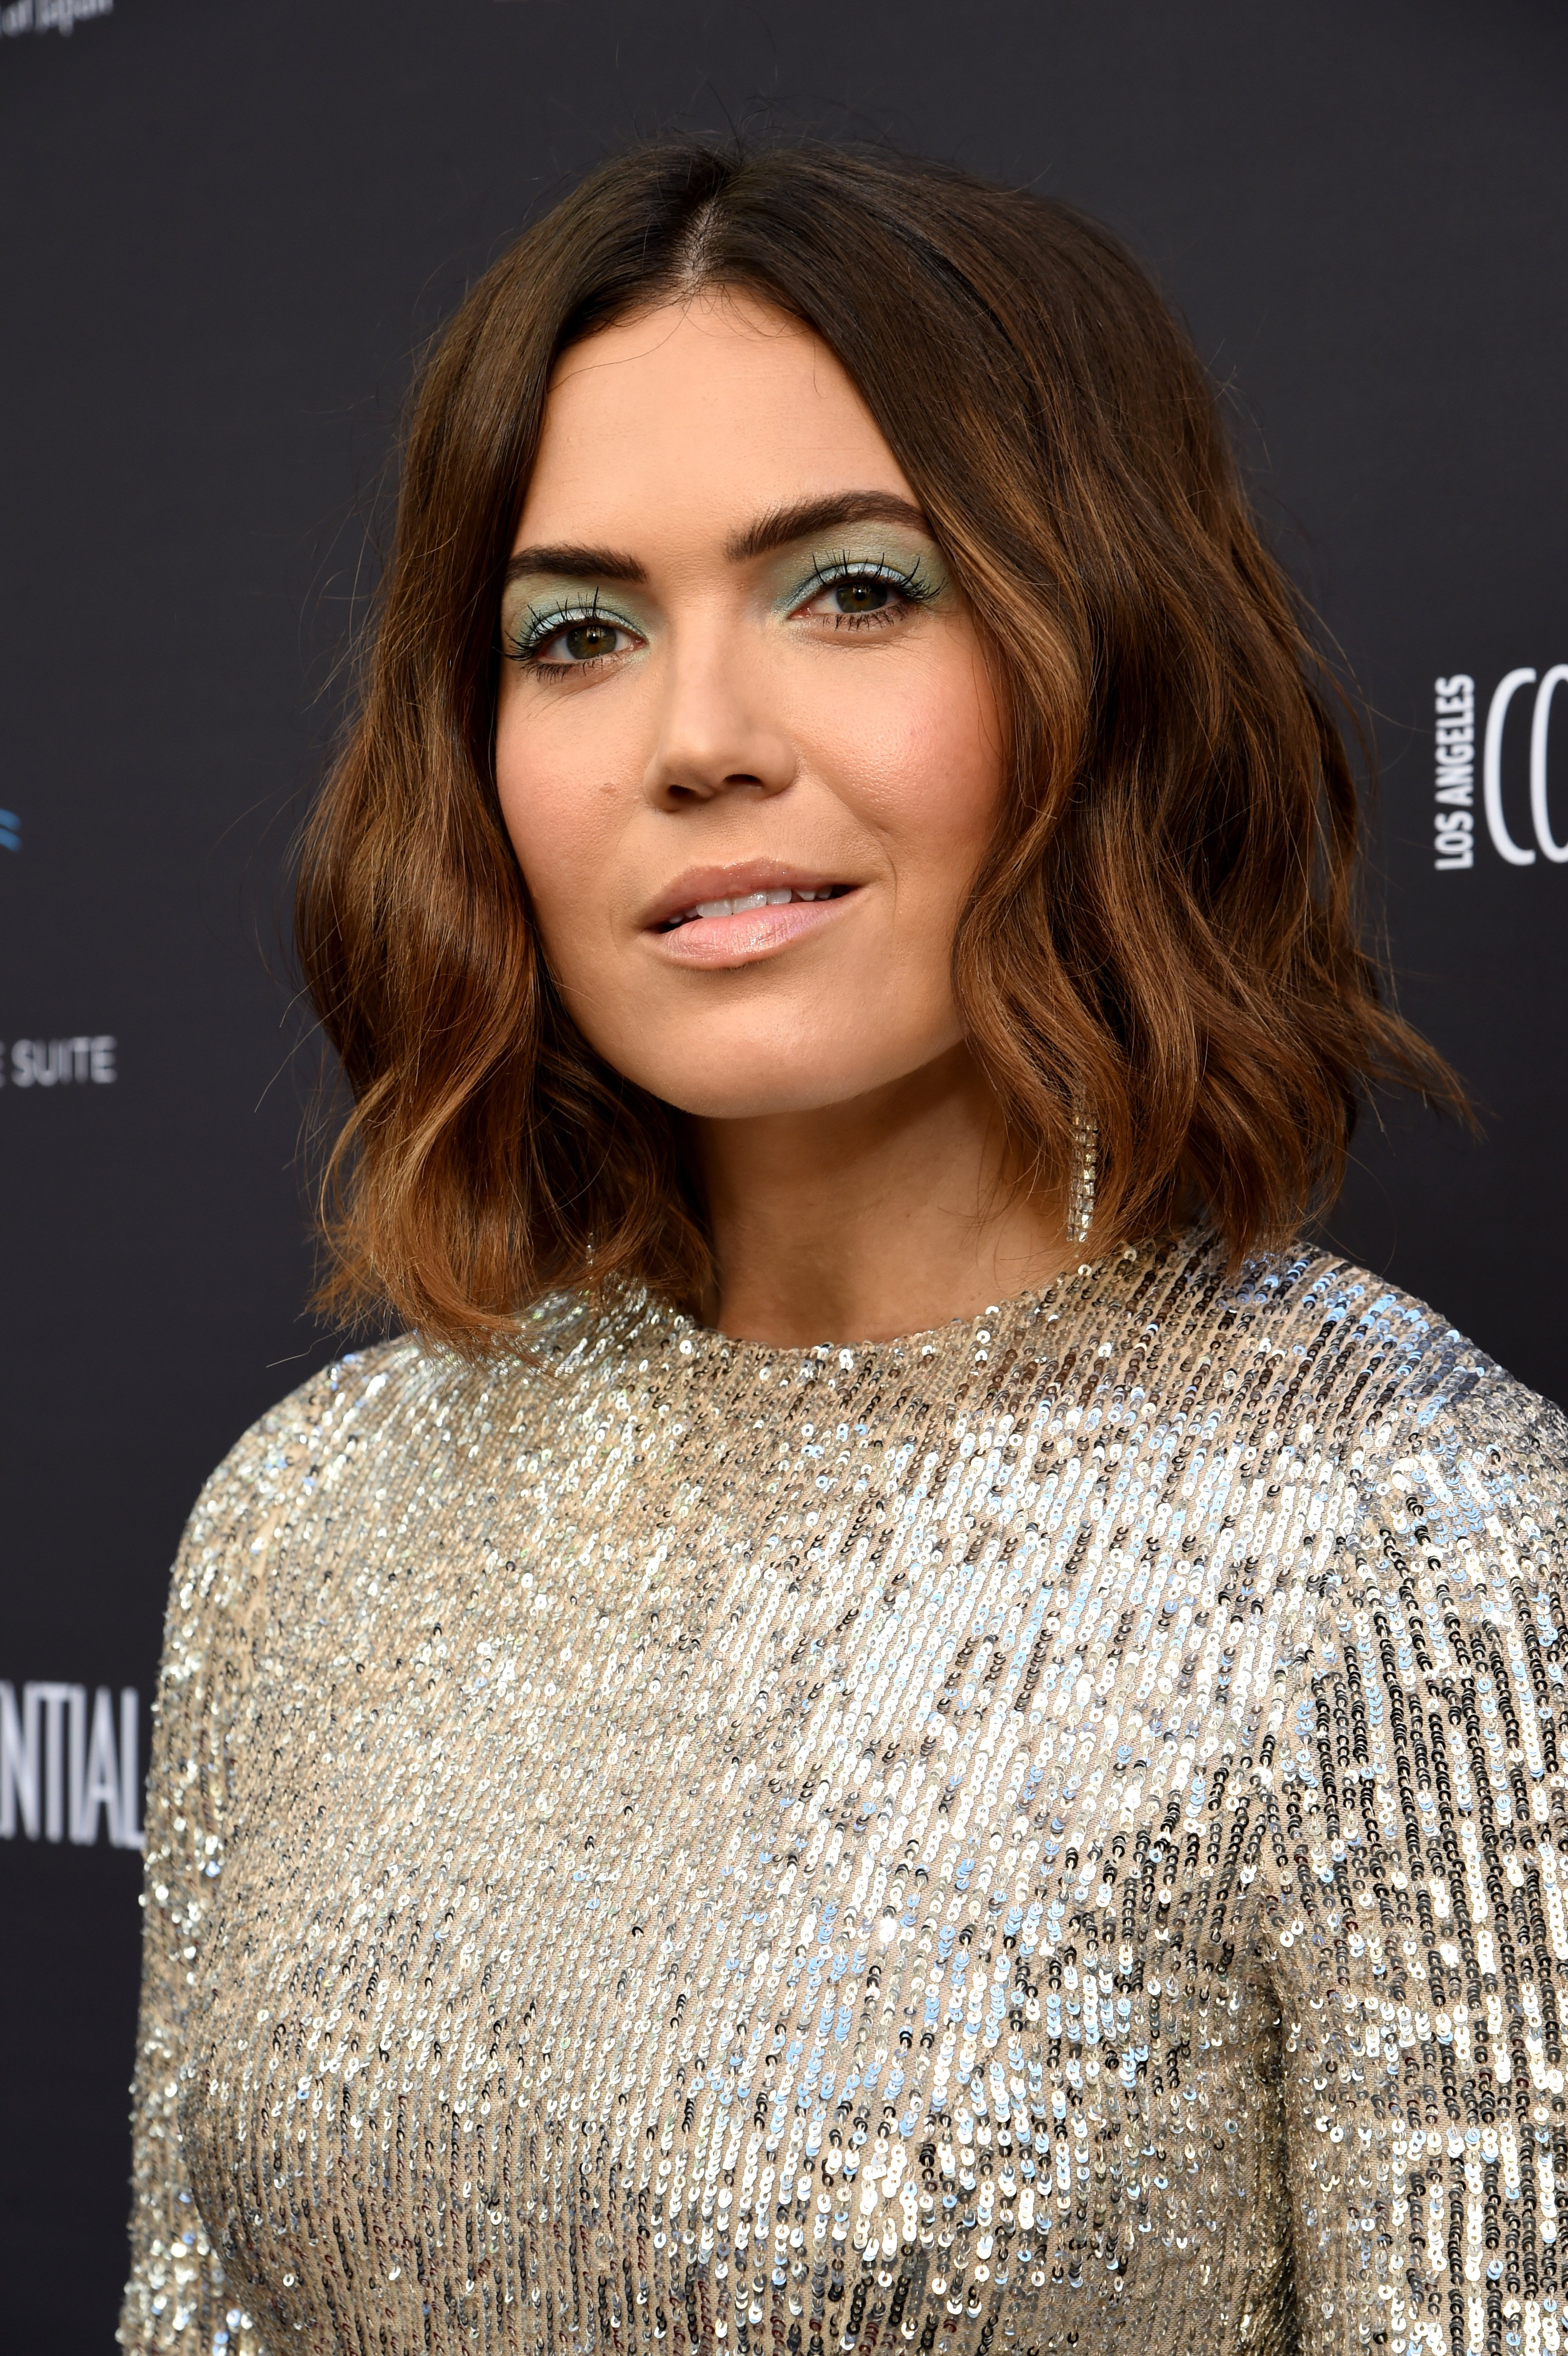 Mandy Moore pictured at the Los Angeles Confidential Impact Awards at The LINE Hotel, 2019, California. | Photo: Getty Images